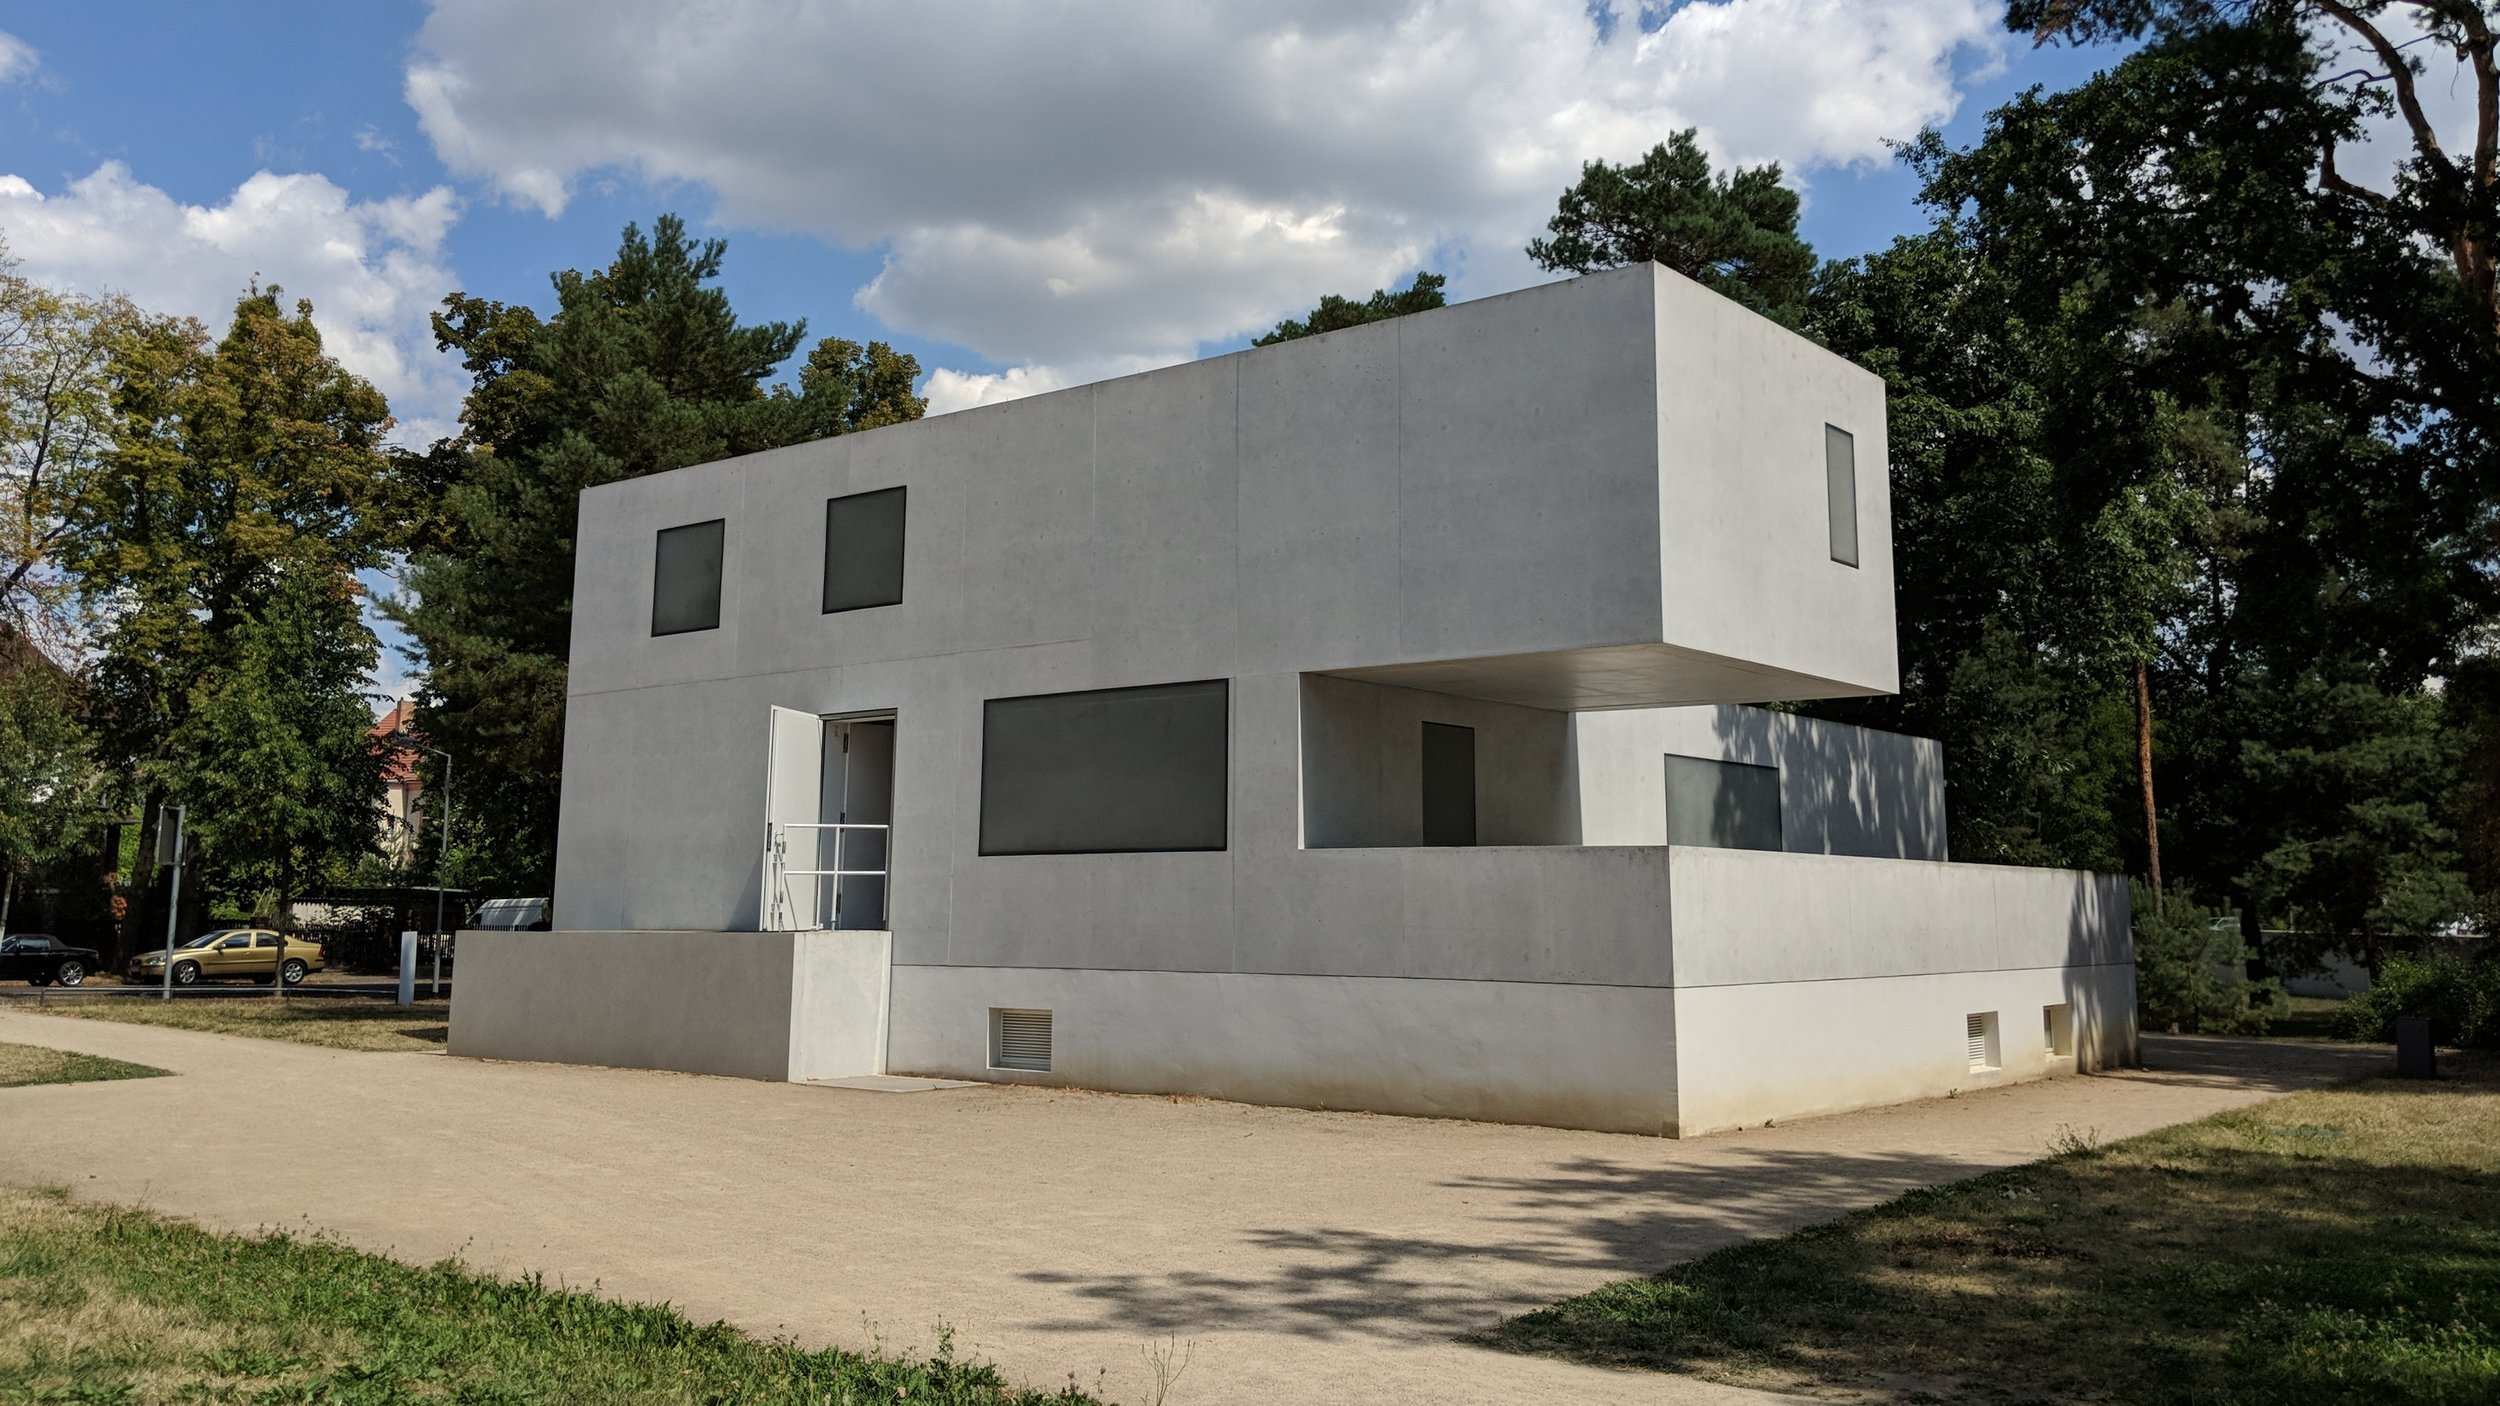 Haus Gropius (Director's House) recreated as a 1:1 scale model of the original.